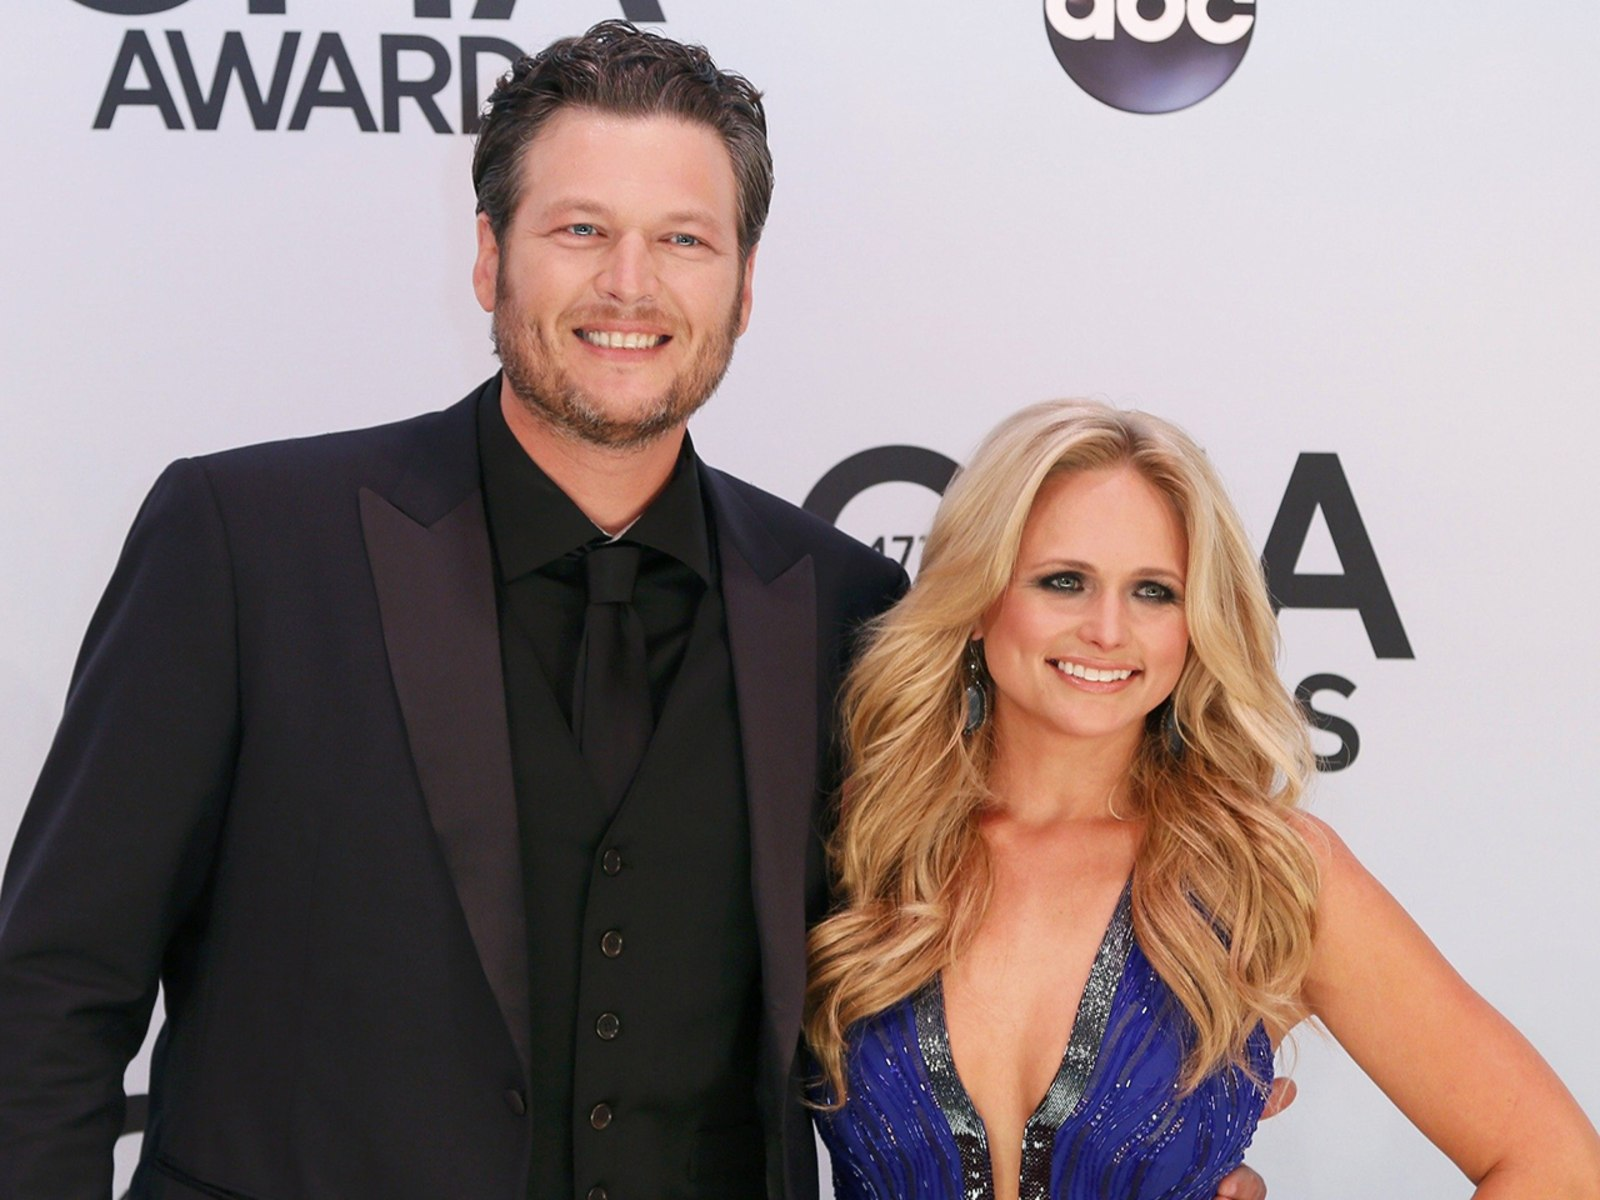 Image: Singer Blake Shelton and his wife, singer Miranda Lambert, arrive at the 47th Country Music Association Awards in Nashville, Tennessee